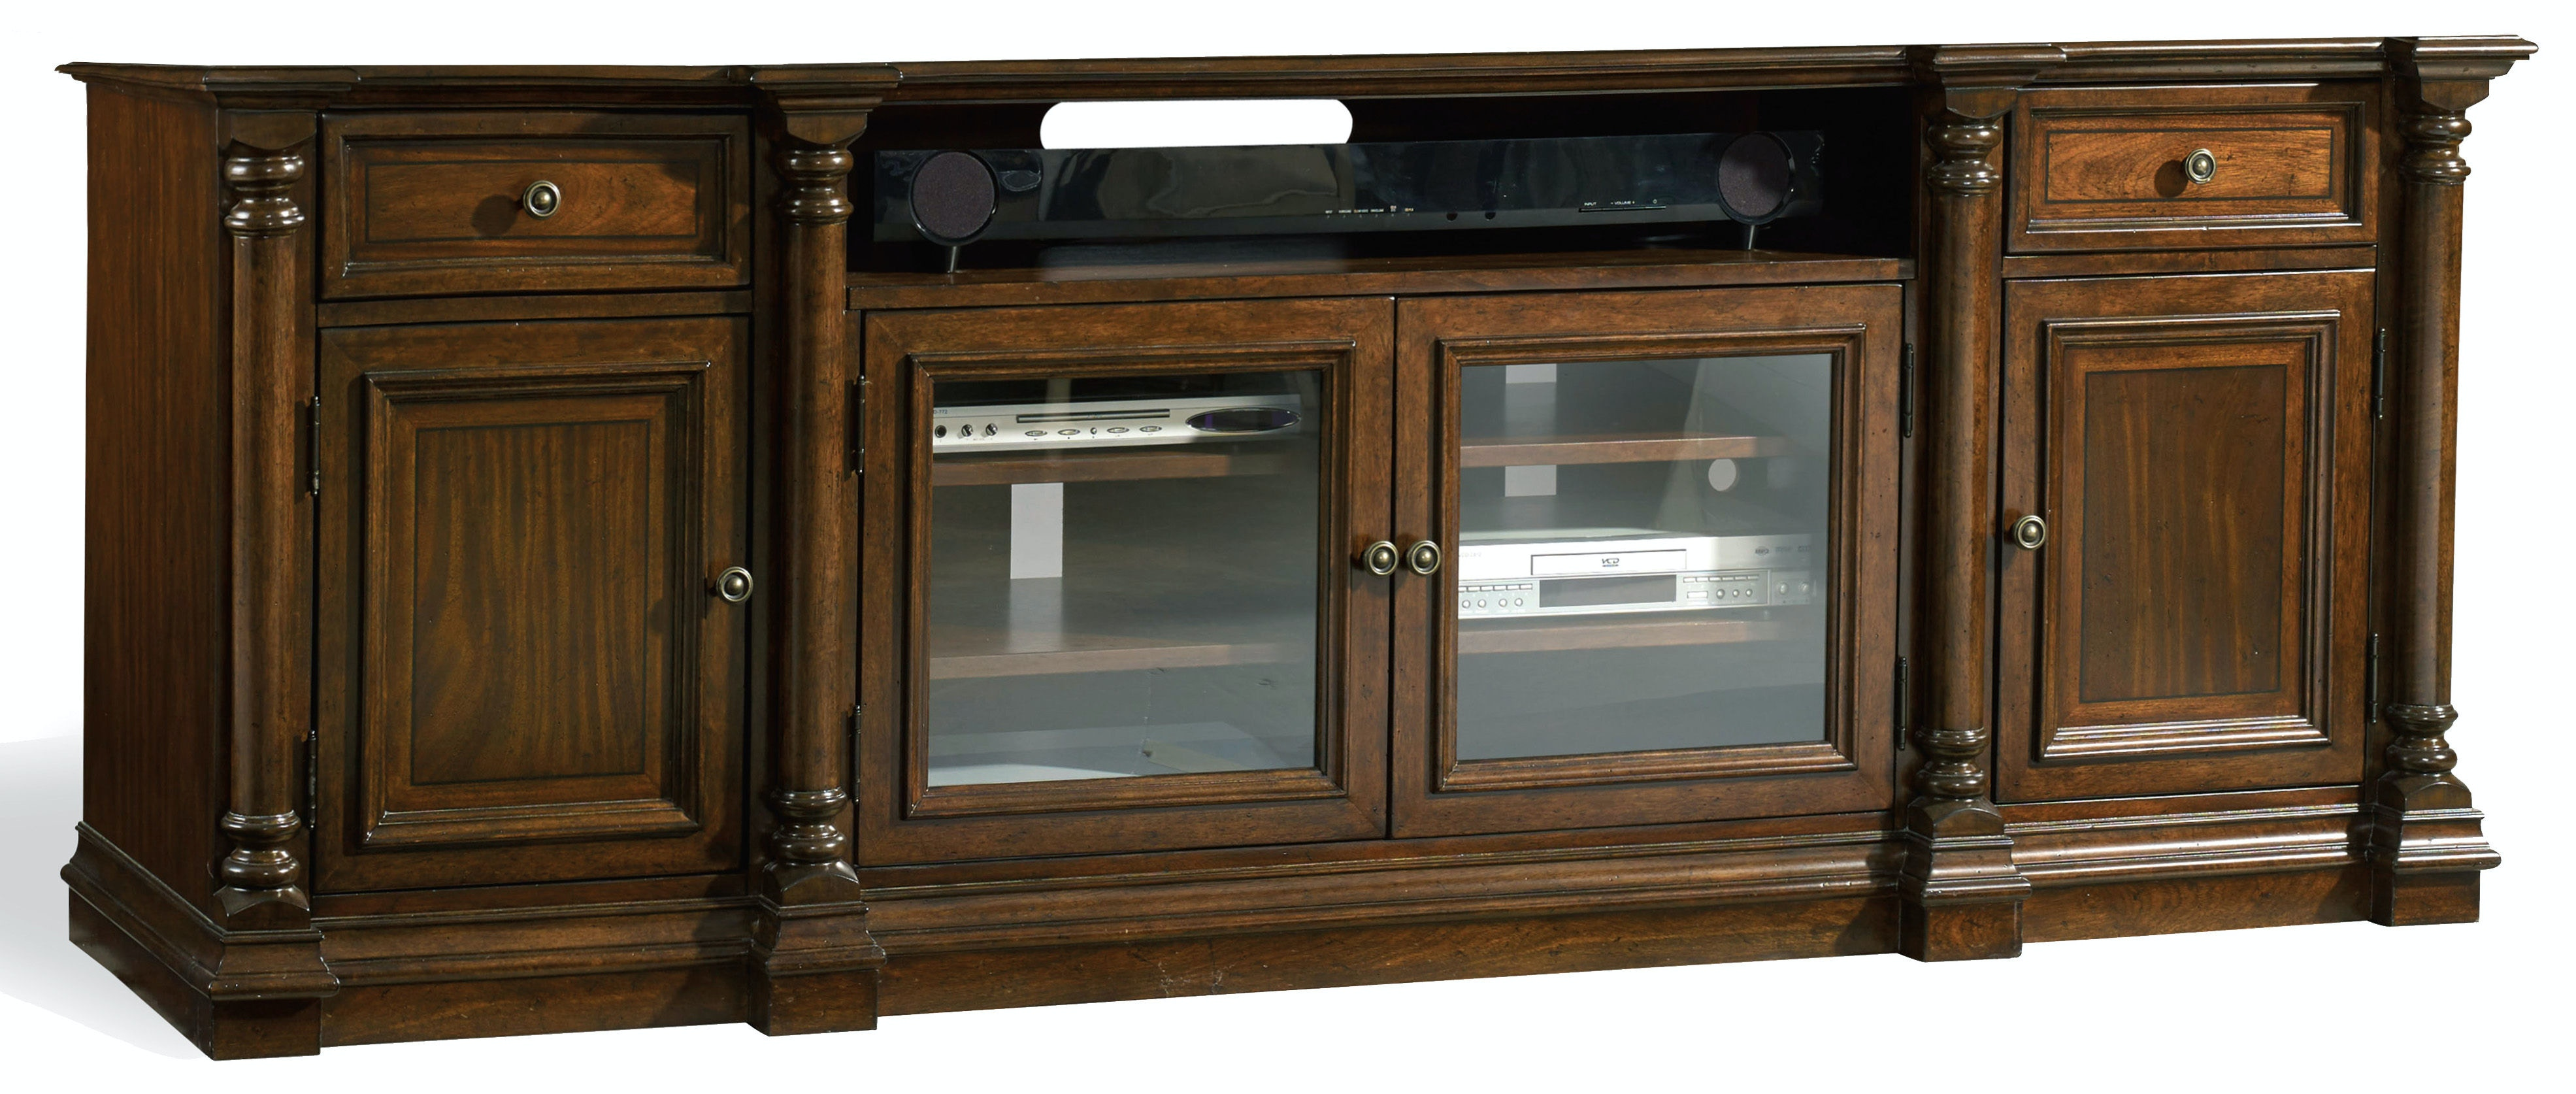 Hooker Furniture Leesburg Entertainment Console Hs538155484